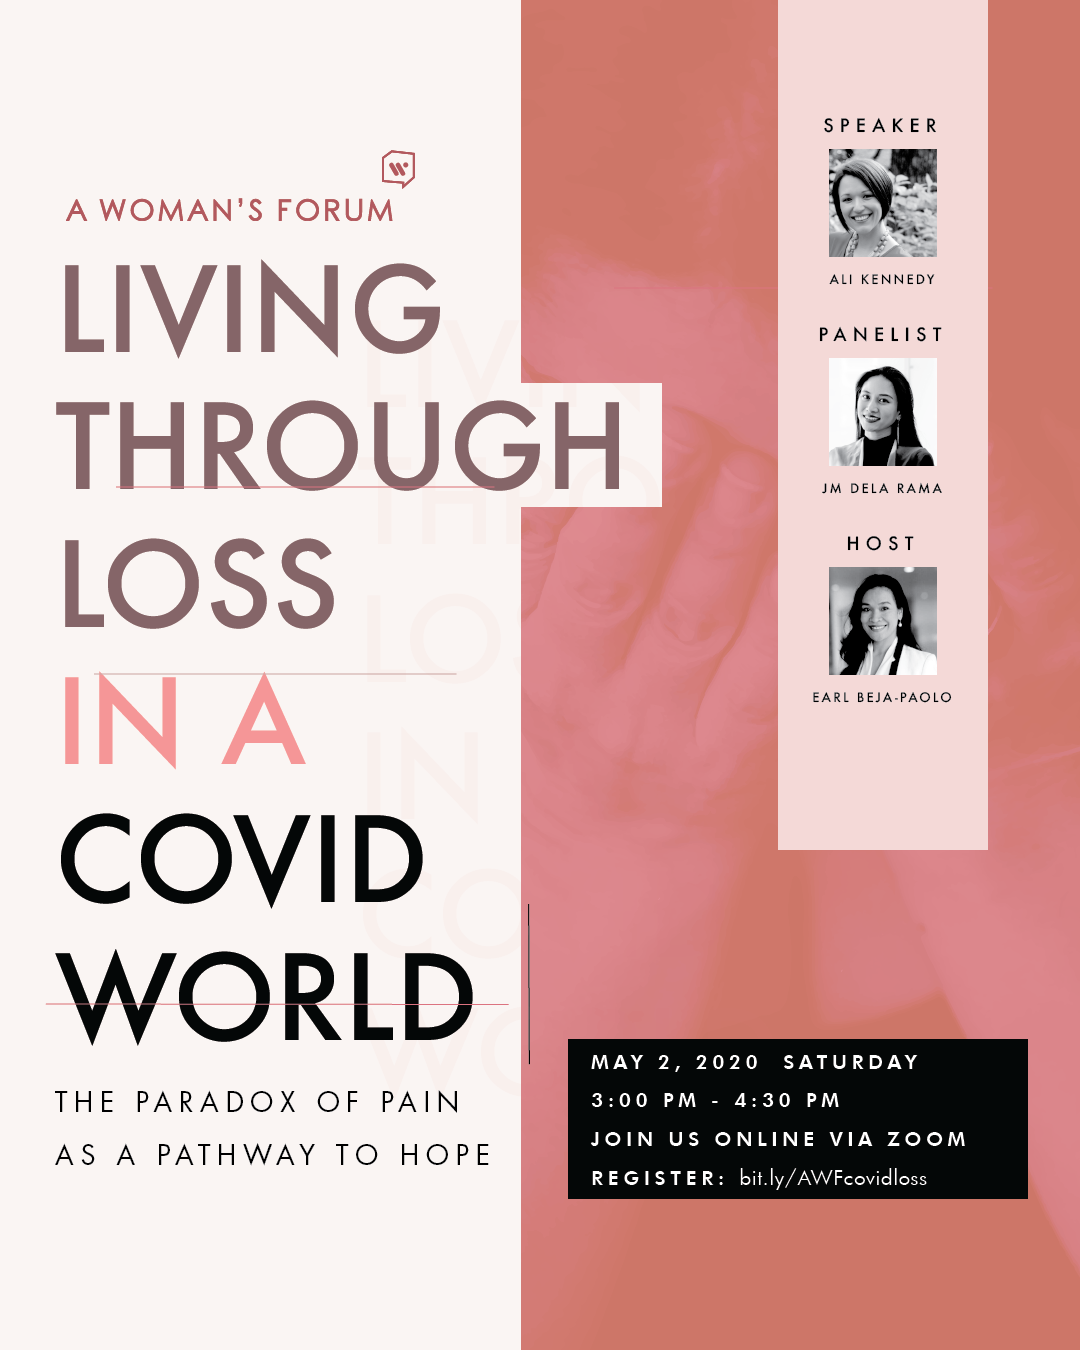 Living Through Loss in a COVID World: The Paradox of Pain as a Pathway to Hope (Online Forum/ Webinar)